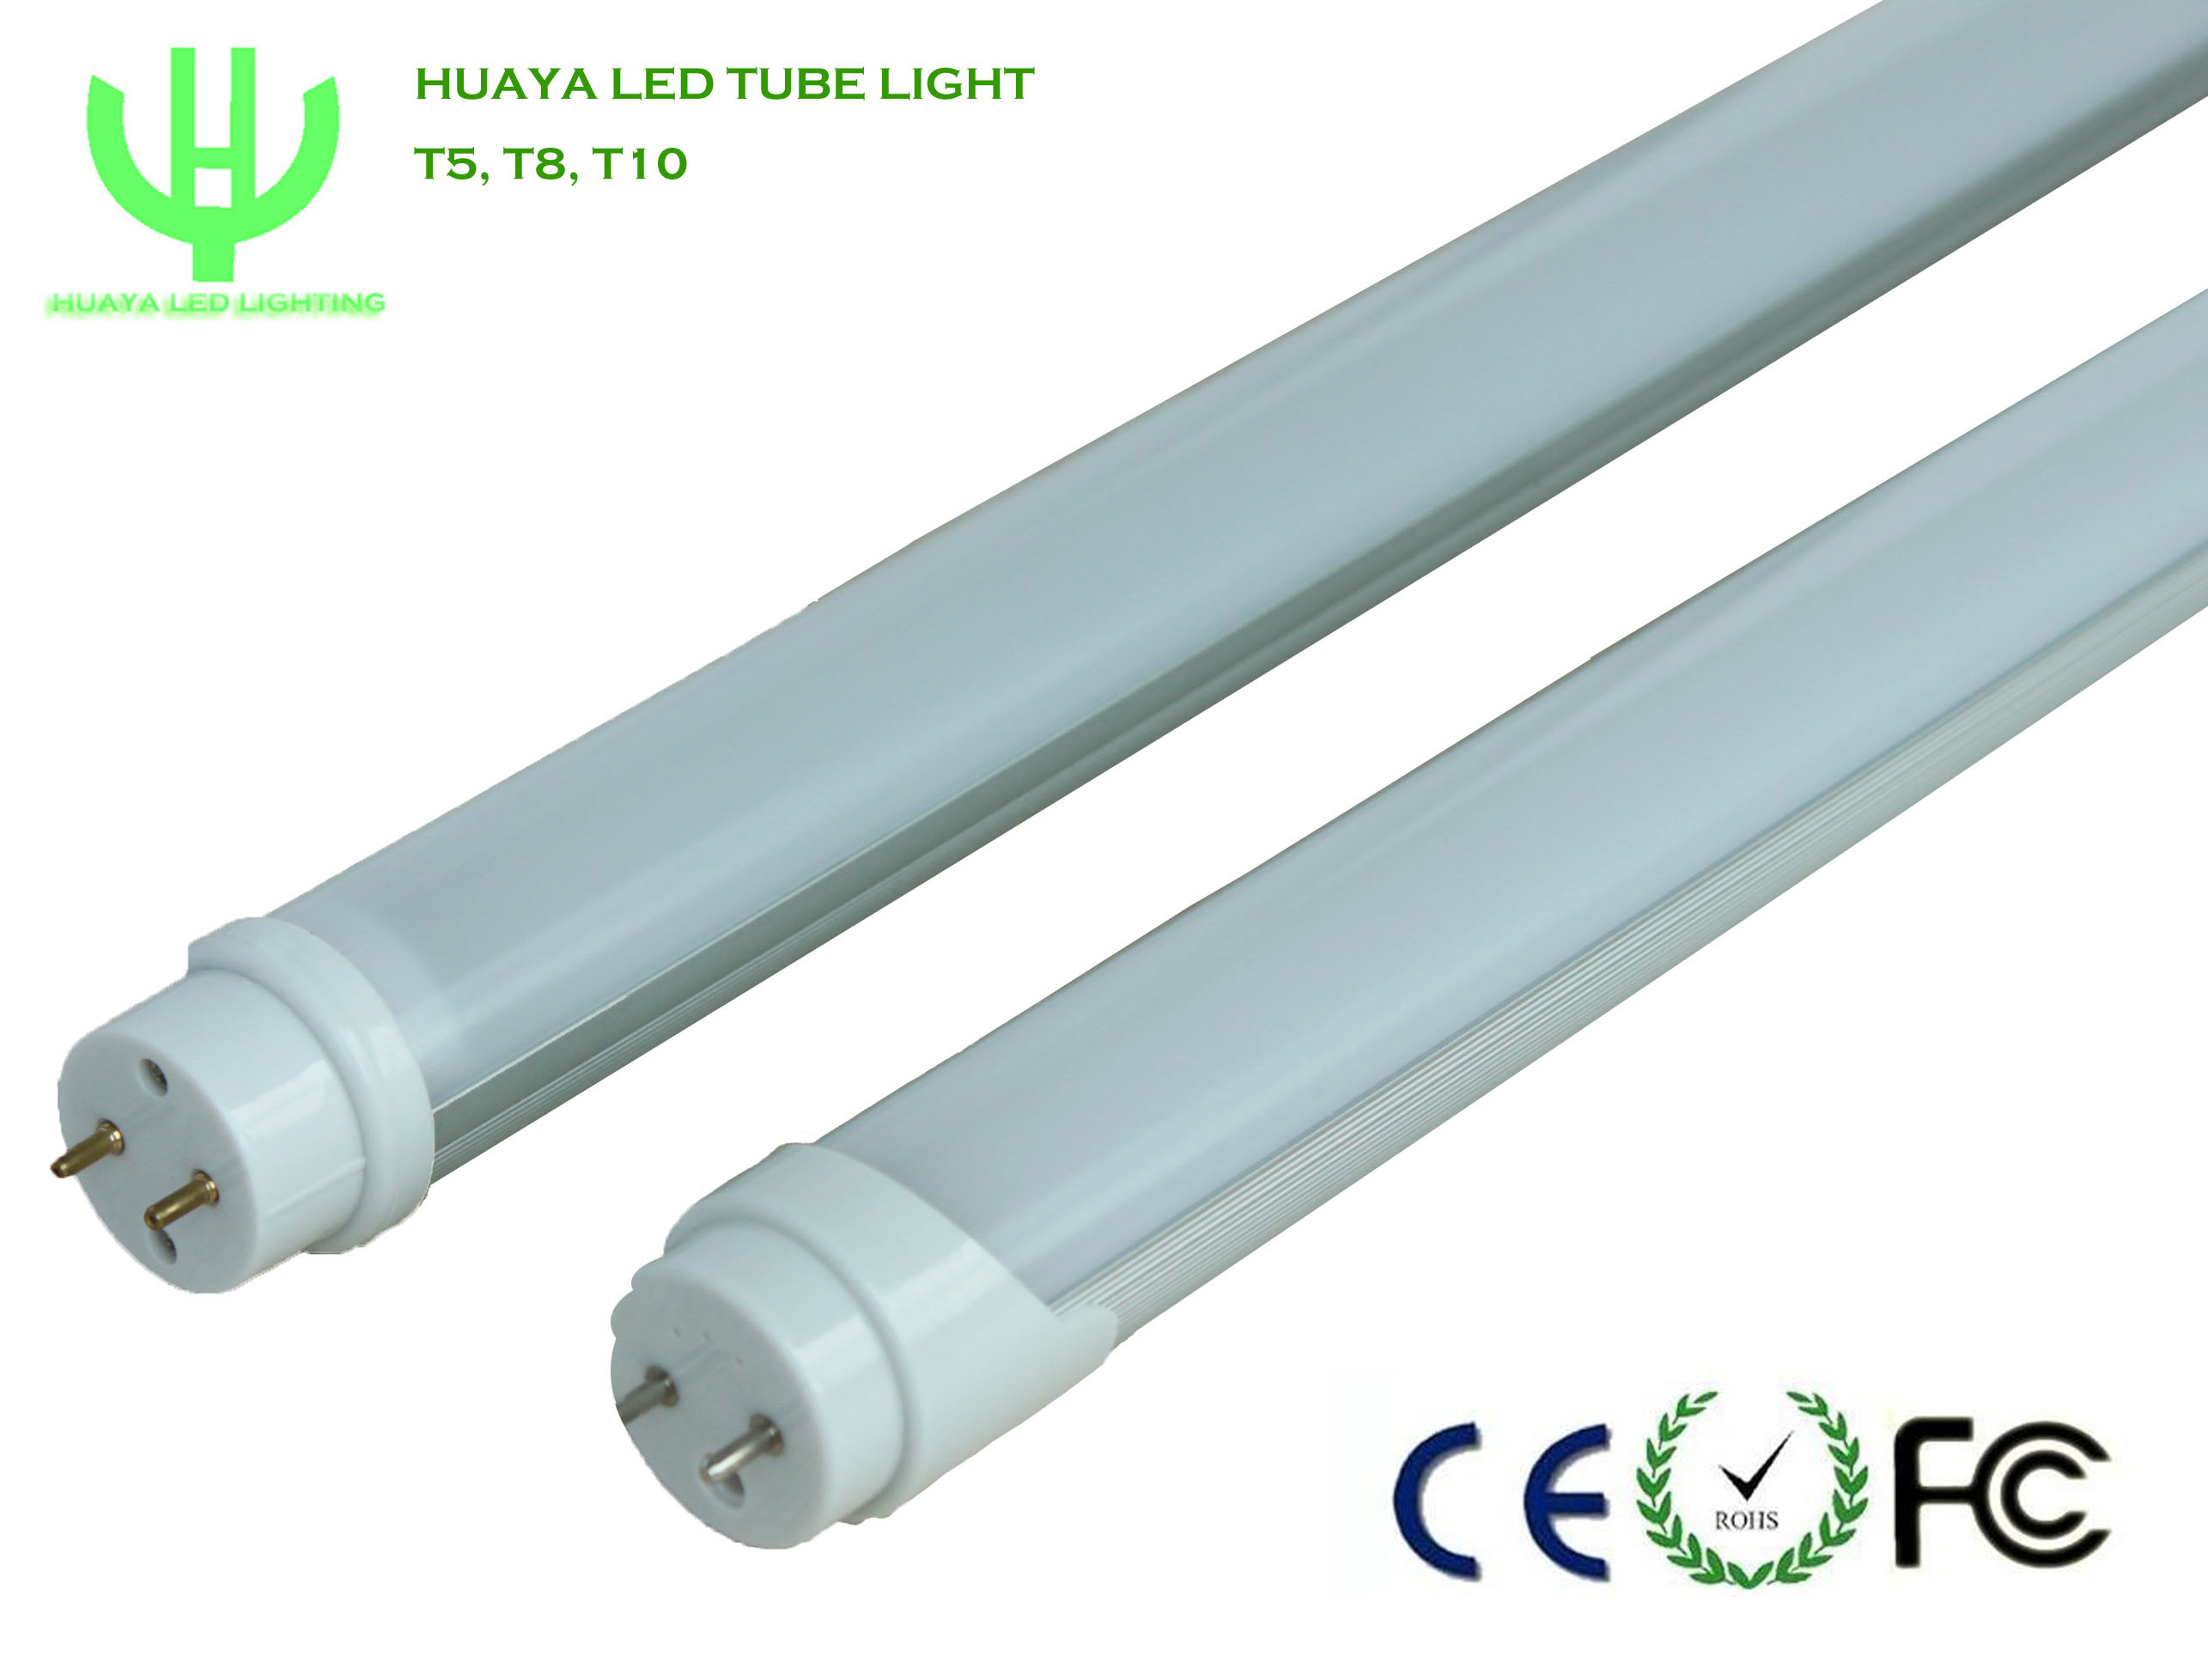 Led T8 Tube China T8 Led Tube Light T8 8w Ce Rohs Hy T8l06w08b